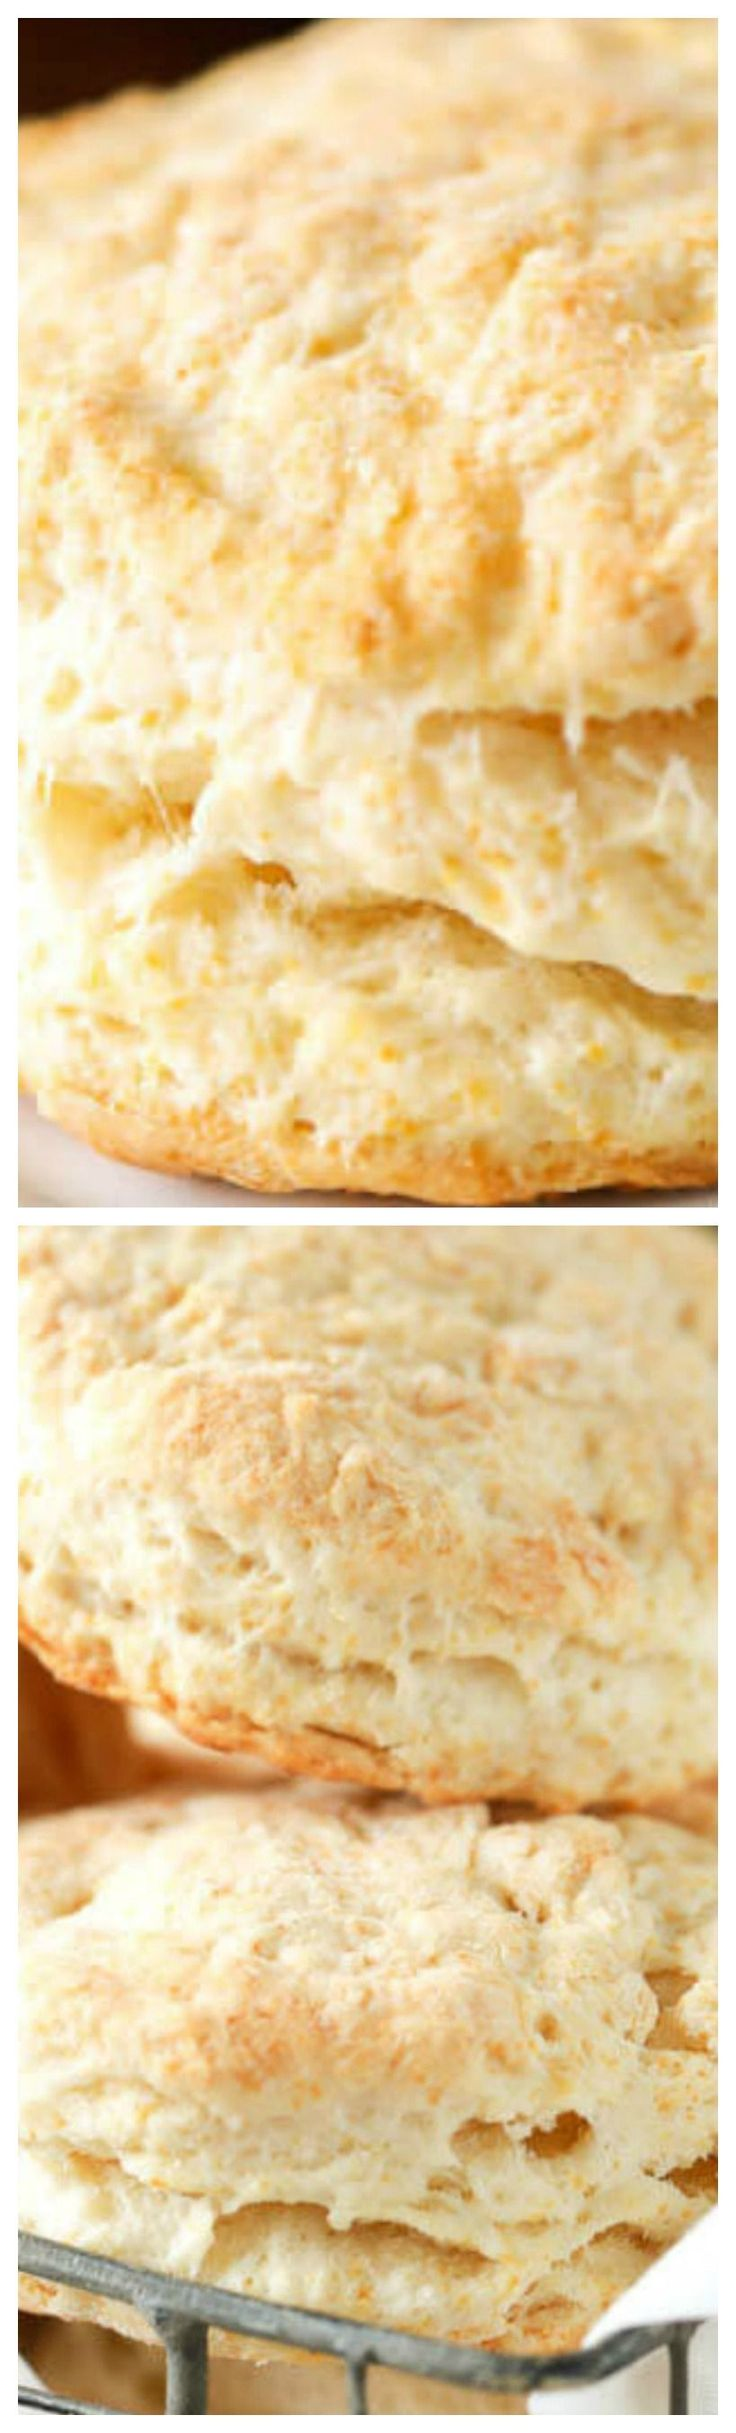 Easy Homemade Buttermilk Biscuits ~ Nothing tastes quite like layer upon layer of flaky buttery biscuits served warm out of the oven. These easy biscuits go perfectly with any meal, savory or sweet!